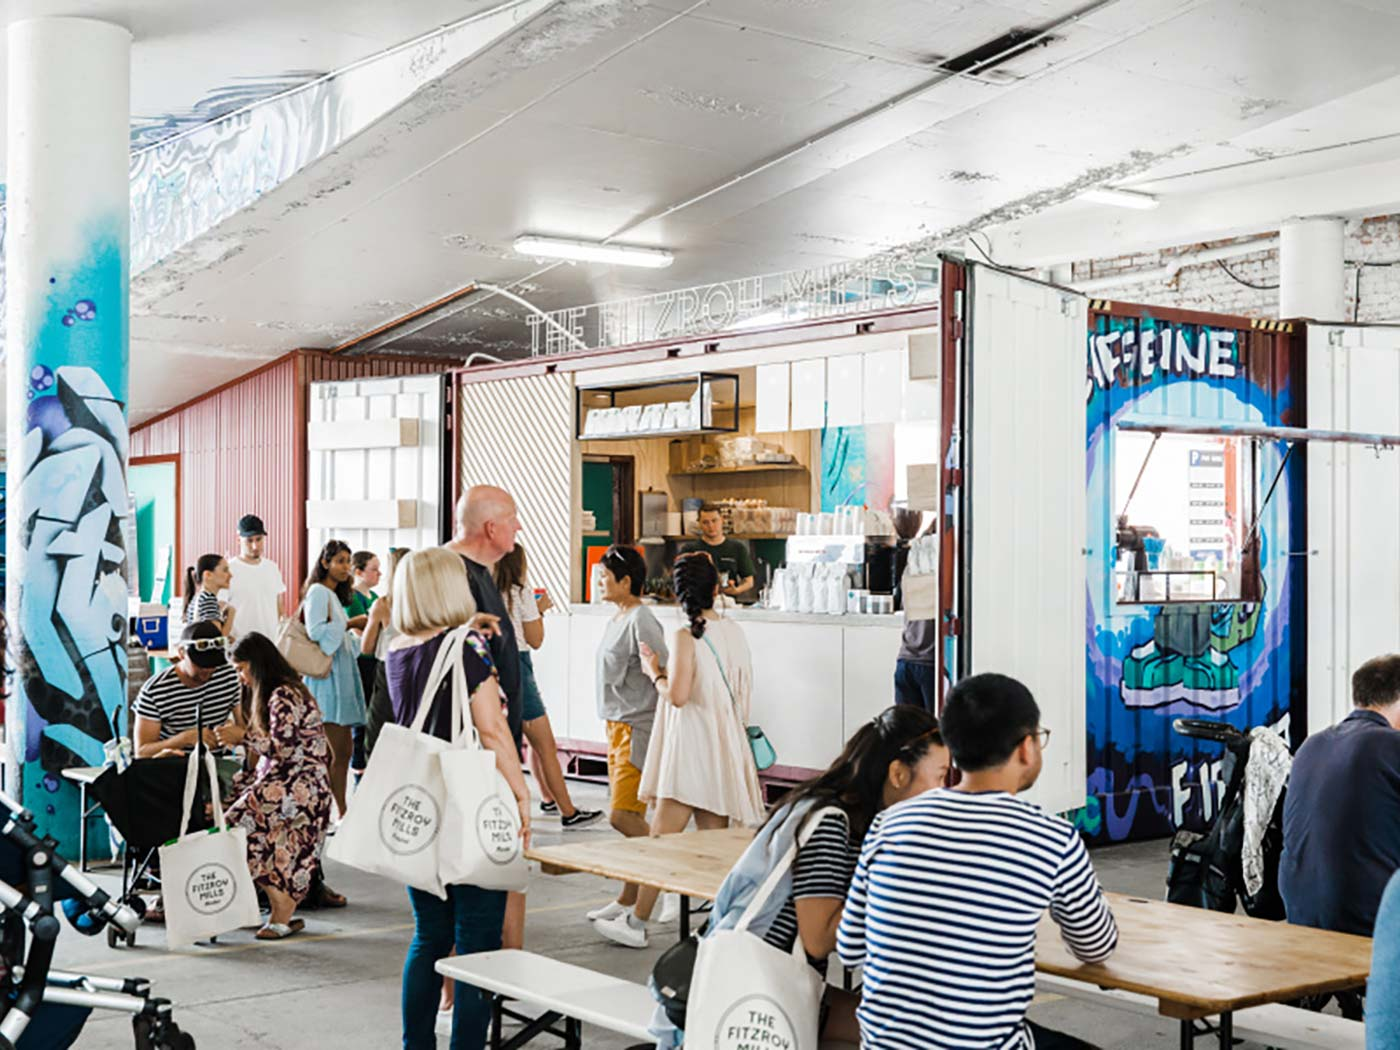 Fitzroy-Mills-Shipping-Container-Cafe-1